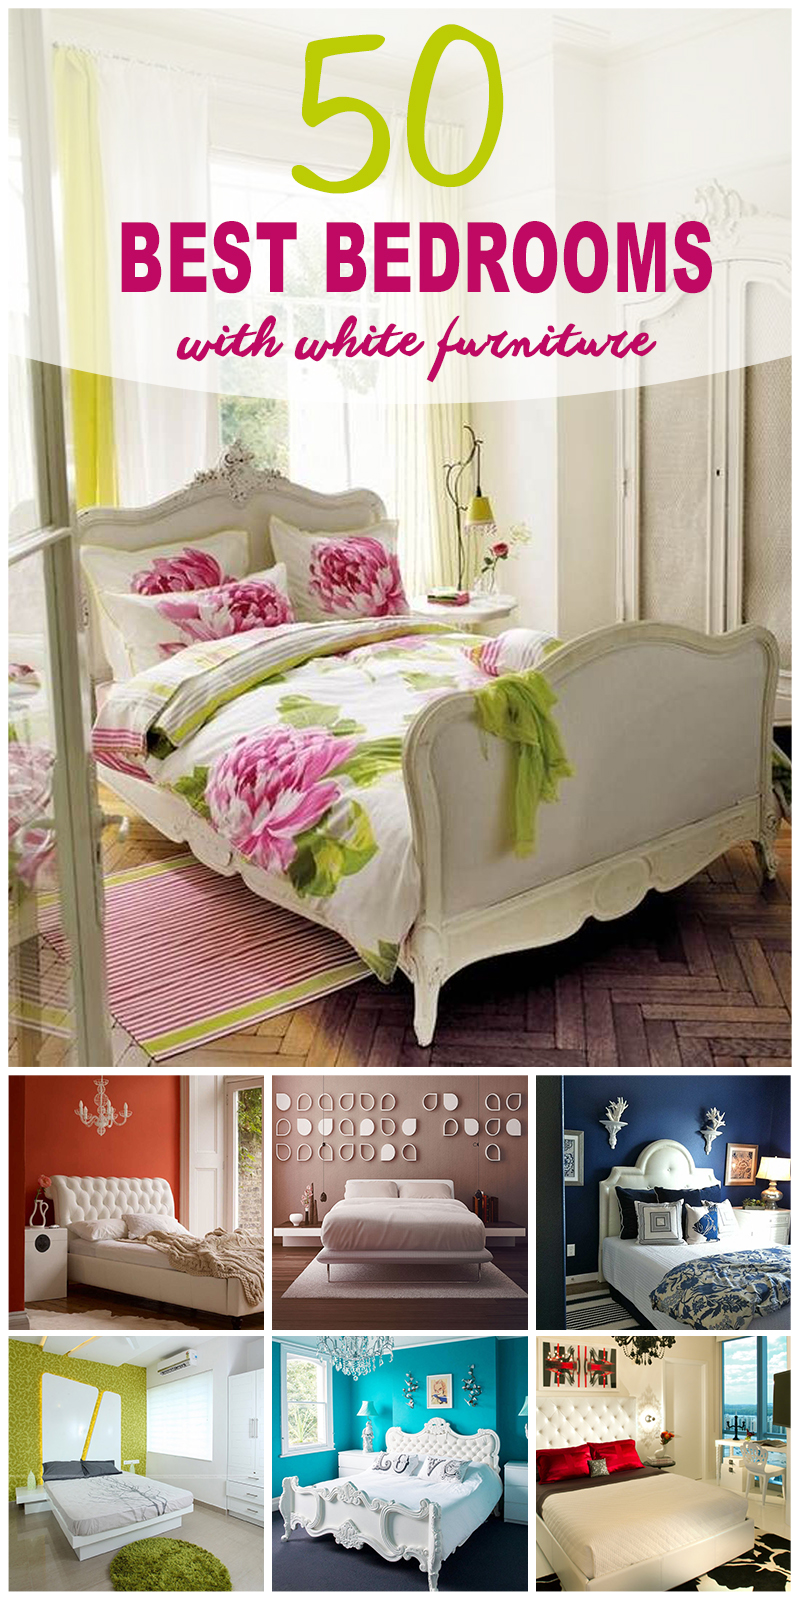 bedrooms with white furniture bedroom ideas white furniture